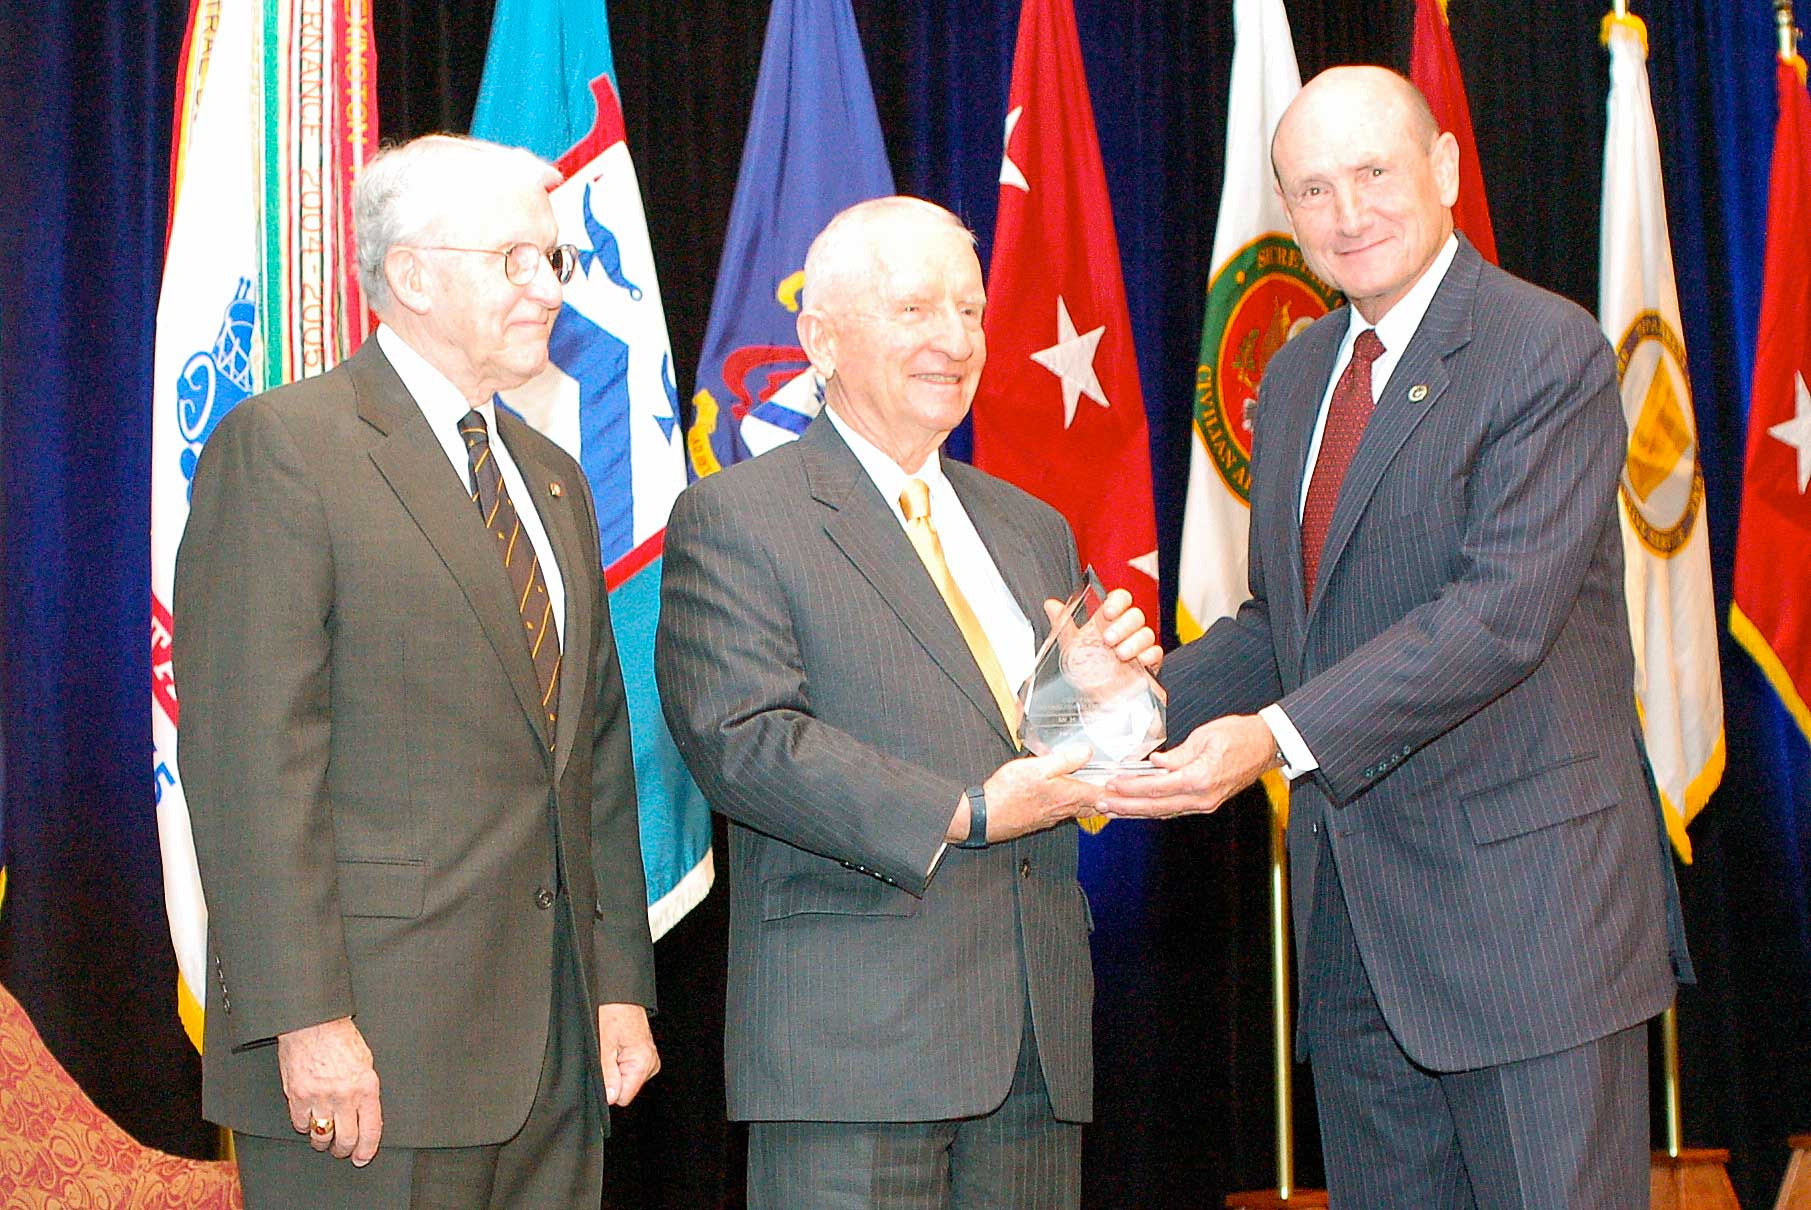 Mr. Ross Perot receives the CGSC Foundation 2010 Distinguished Leadership Award from Foundation President Hyrum Smith, right, and Foundation Chairman Lt. Gen. (Ret.) Robert Arter, left. (photo by Mark H. Wiggins)